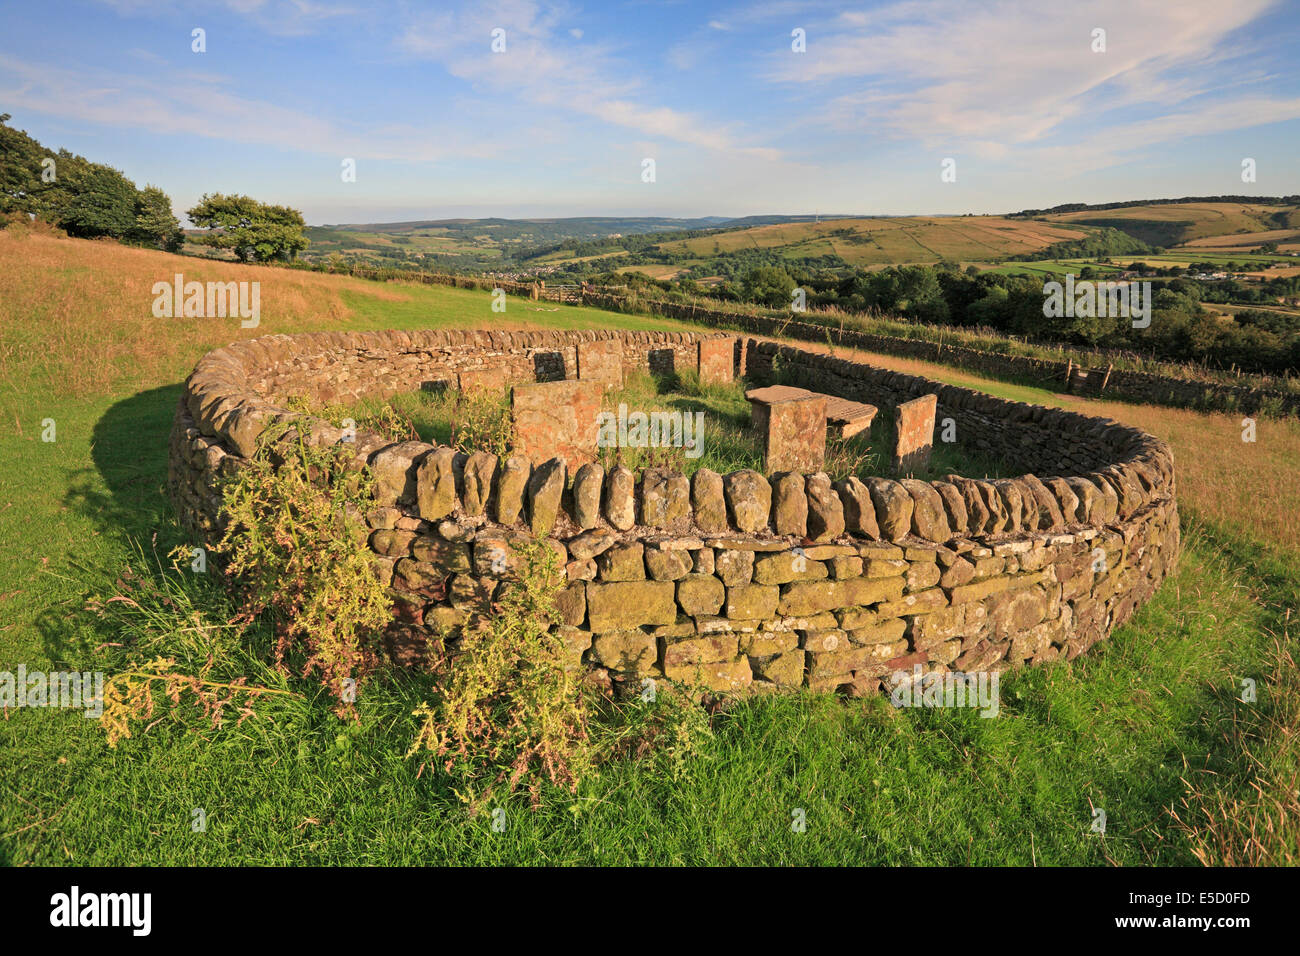 The Riley Graves, Eyam plague village, Derbyshire, Peak District National Park, England, UK. - Stock Image